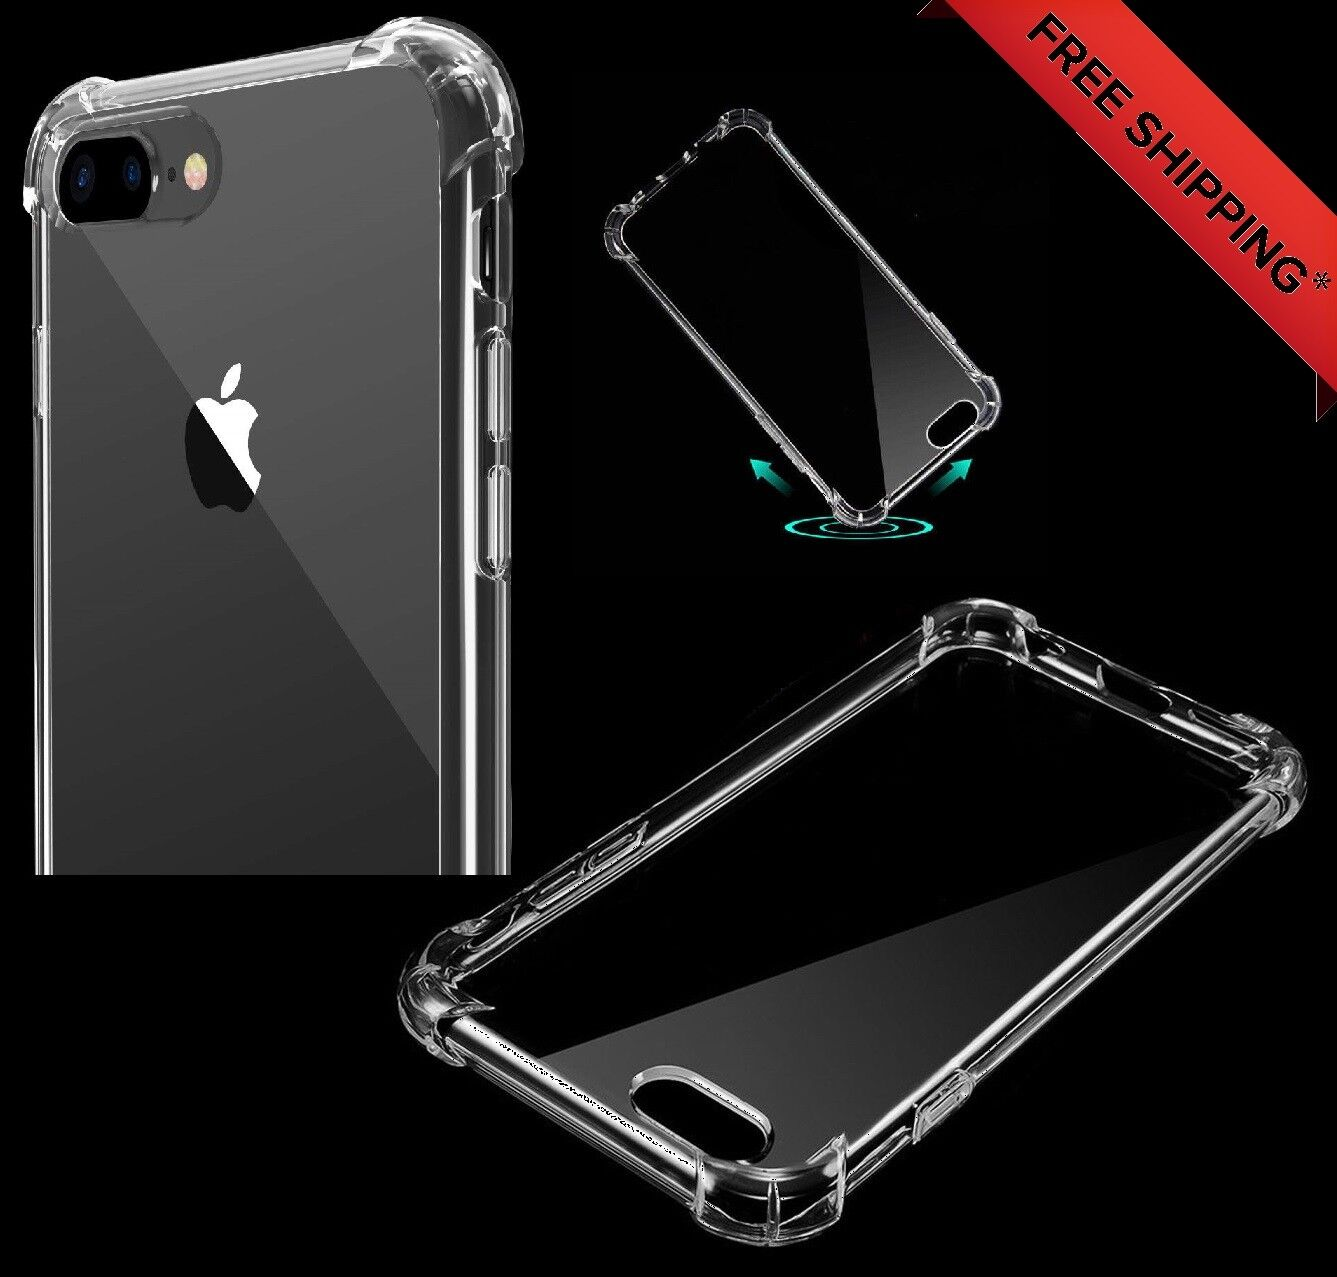 Reinforced Hard TPU Bumper Cushion Corner Transparent Case For iPhone 7 PLUS Cases, Covers & Skins